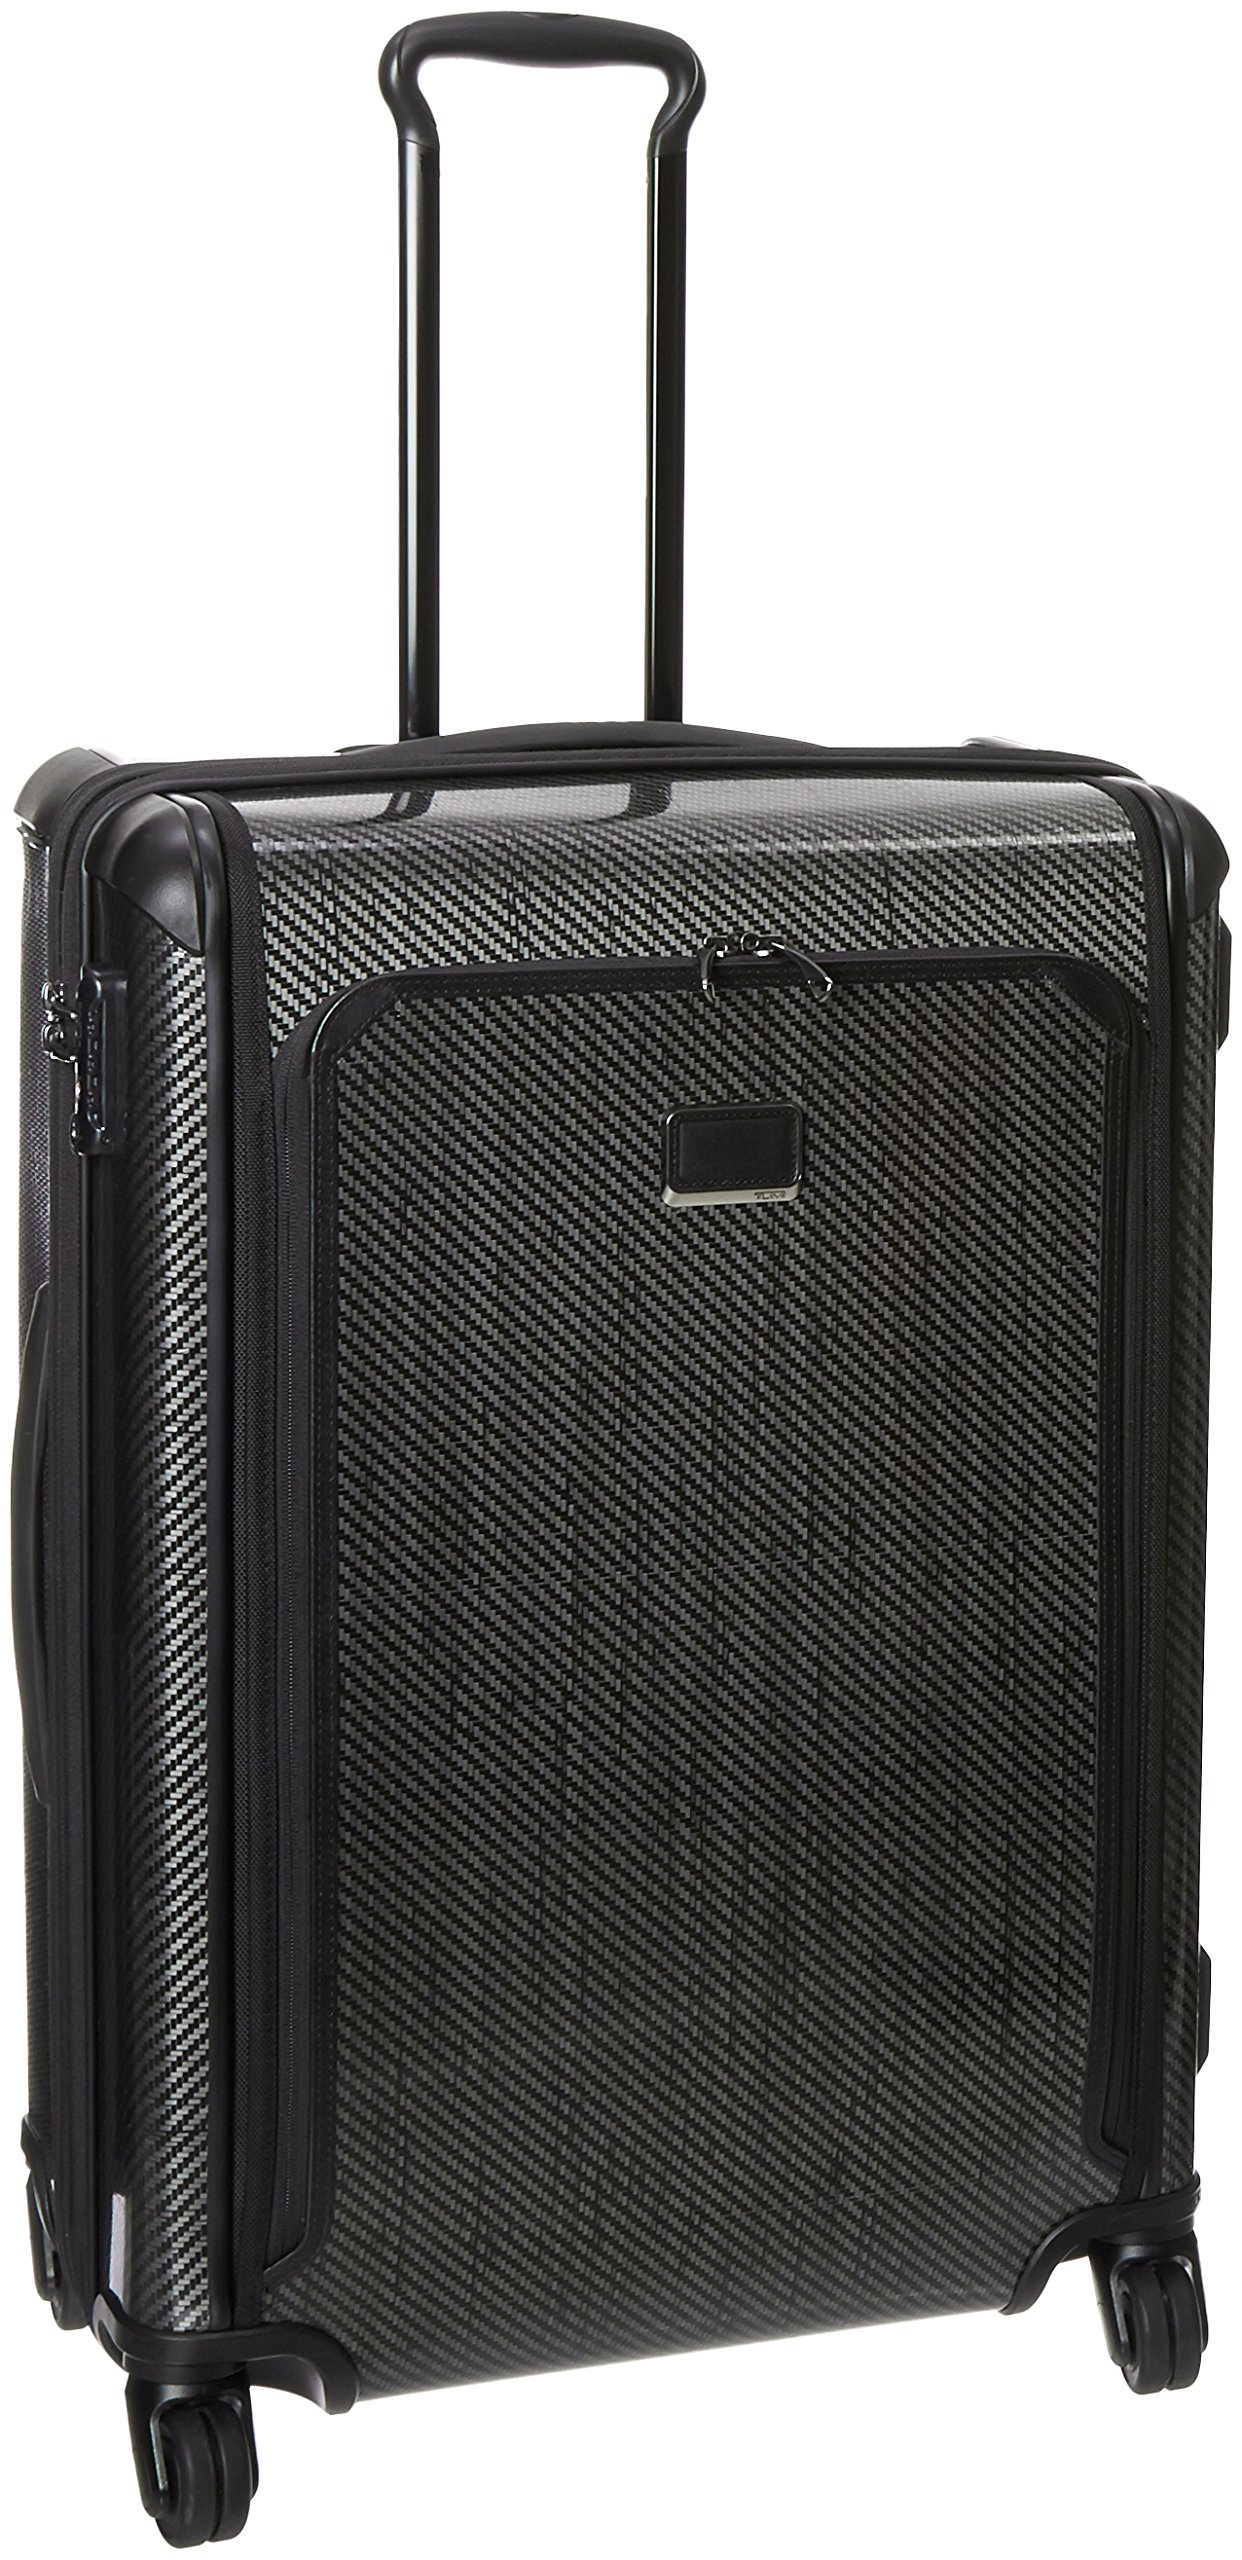 Tumi Tegra Lite Max Large Trip Expandable Packing Case, Black Graphite, One Size by Tumi